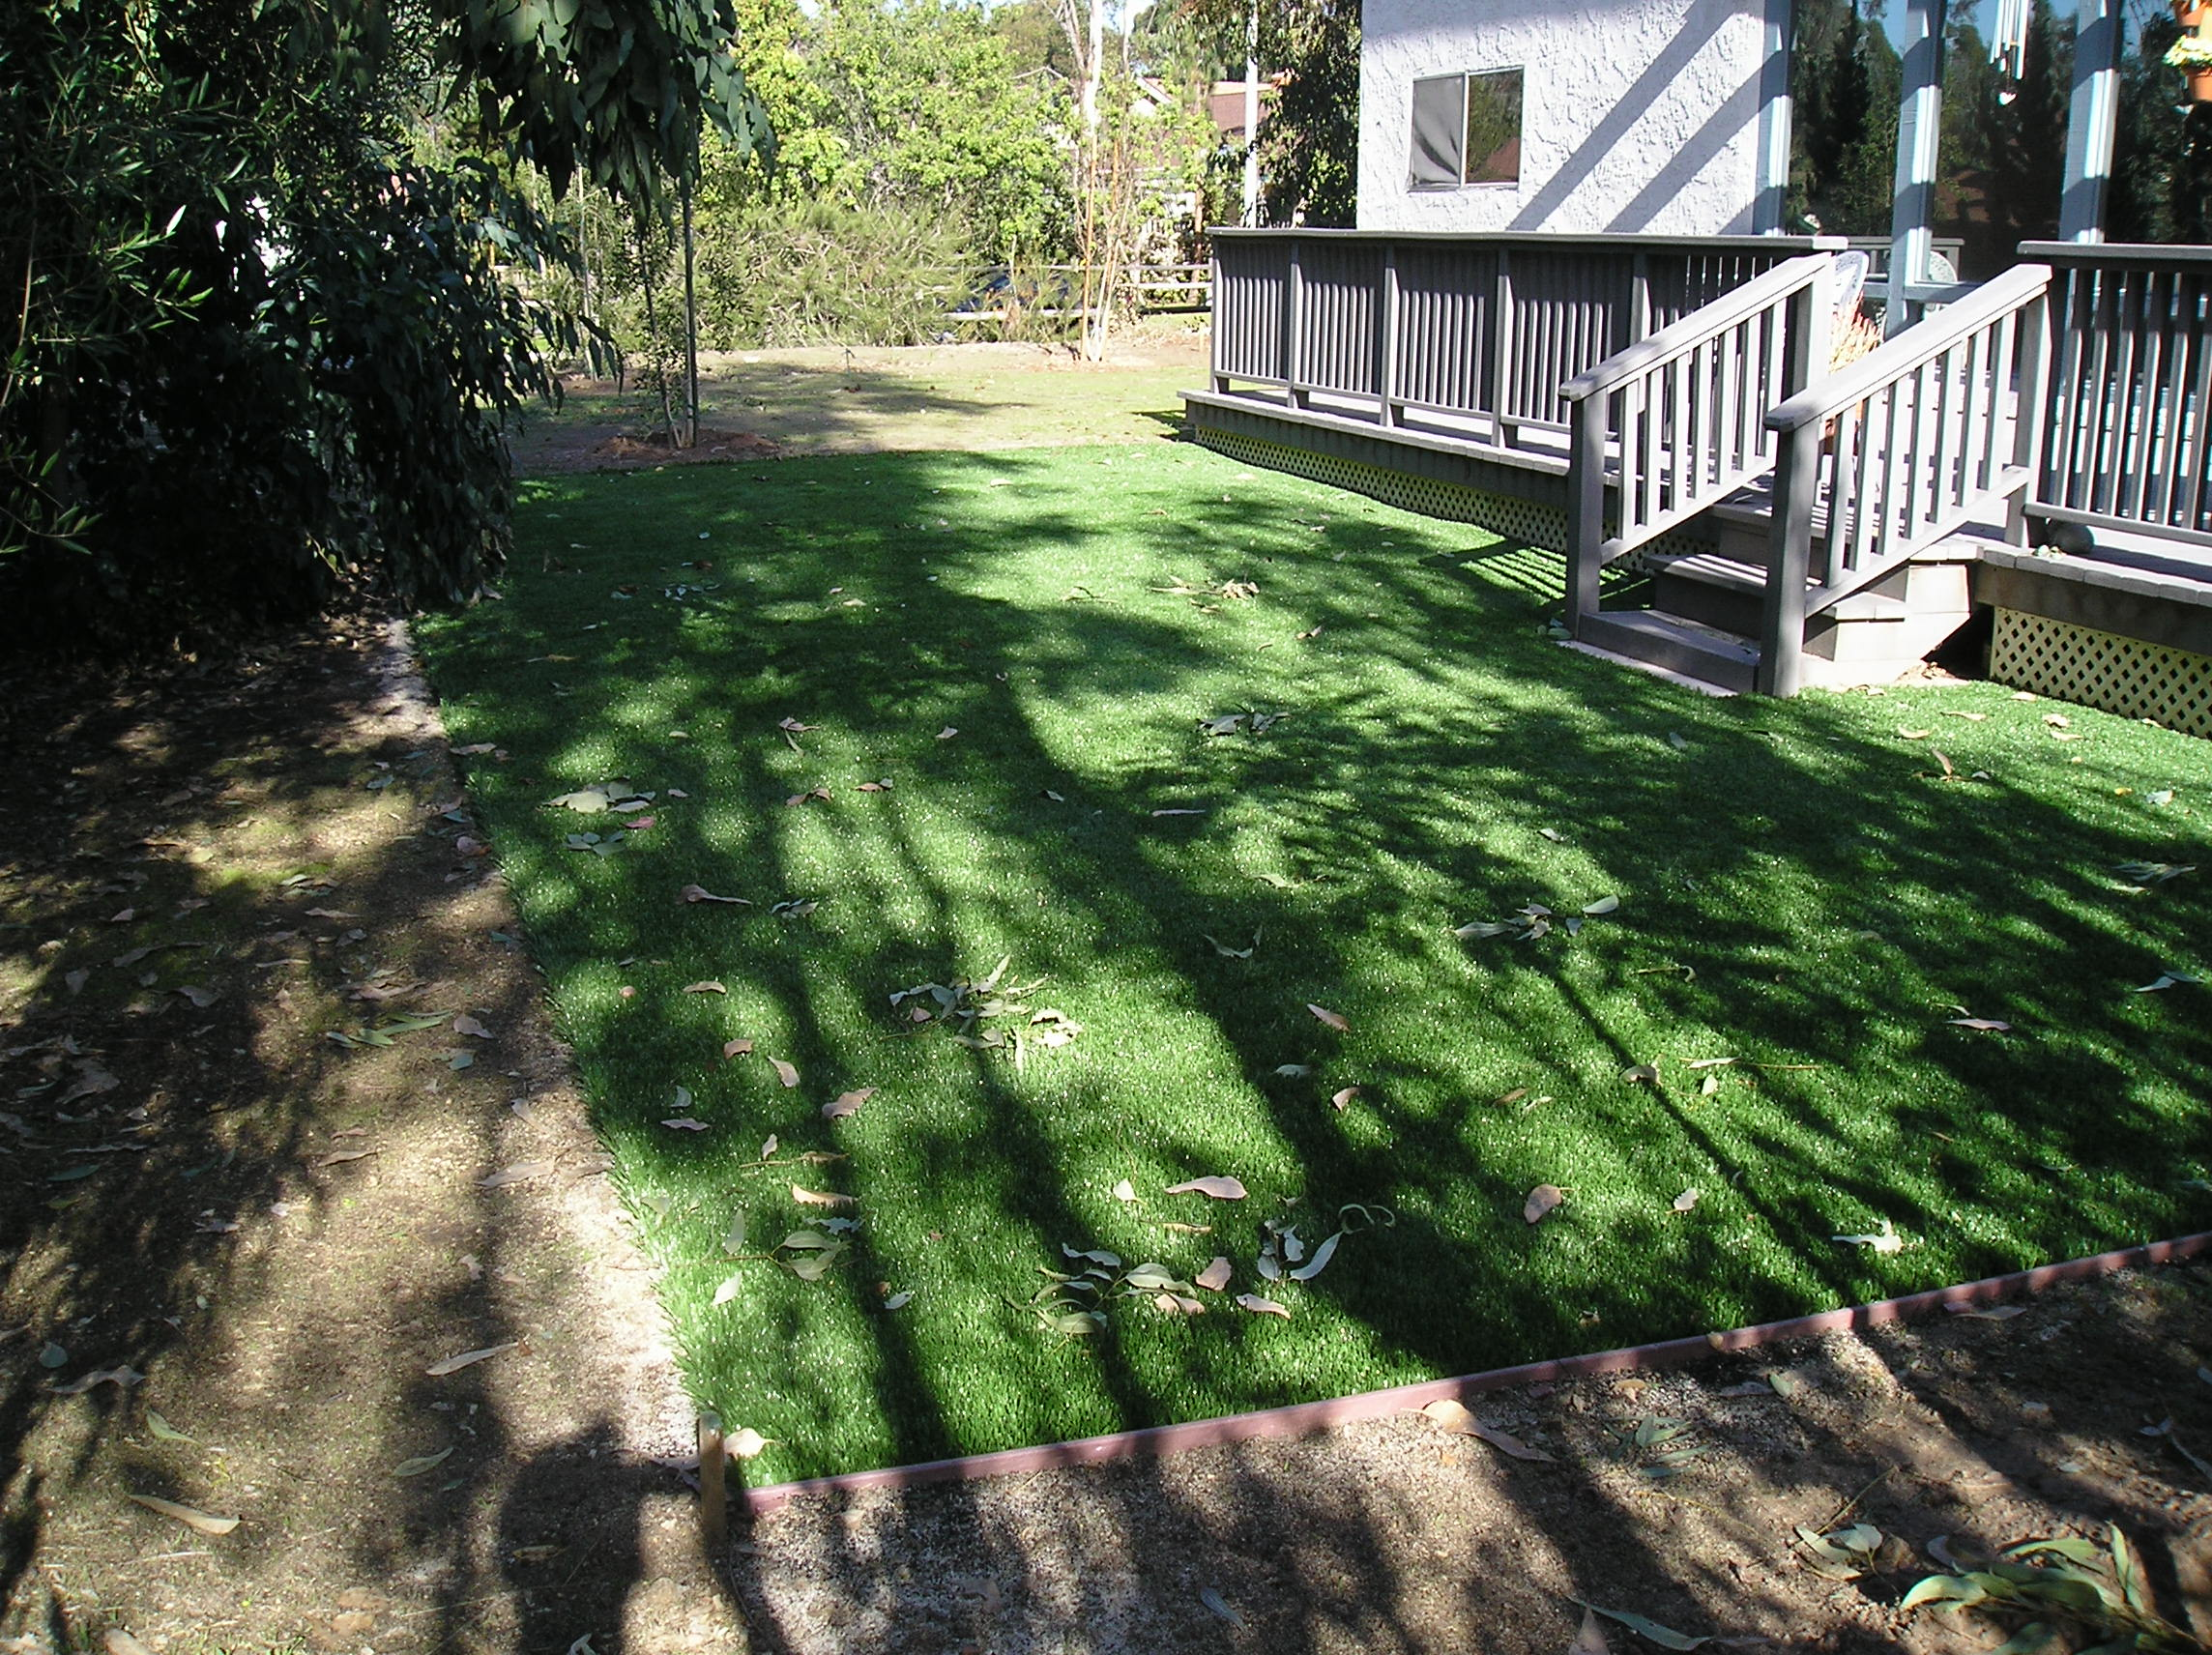 S Blade-90 fake grass for yard,backyard turf,turf backyard,turf yard,fake grass for backyard